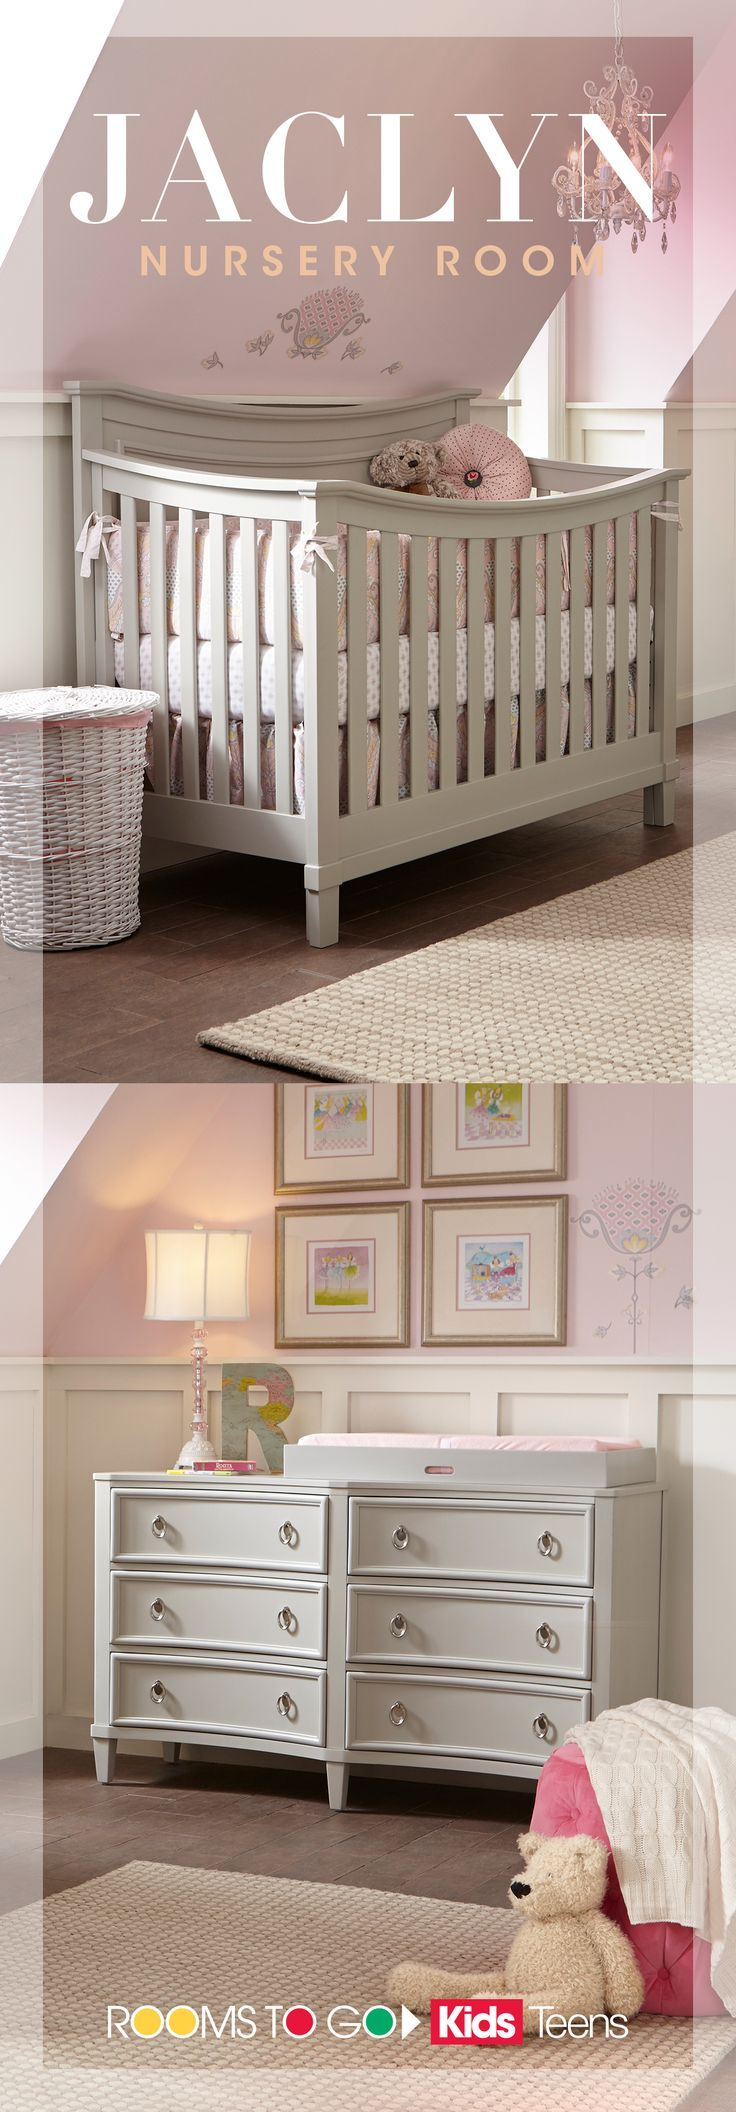 The Jaclyn Nursery Room Is The Ideal Place For Your Precious Baby To Lay Their Head Not Only It Is Complete Wit Baby Cribs Baby Nursery Furniture Nursery Room